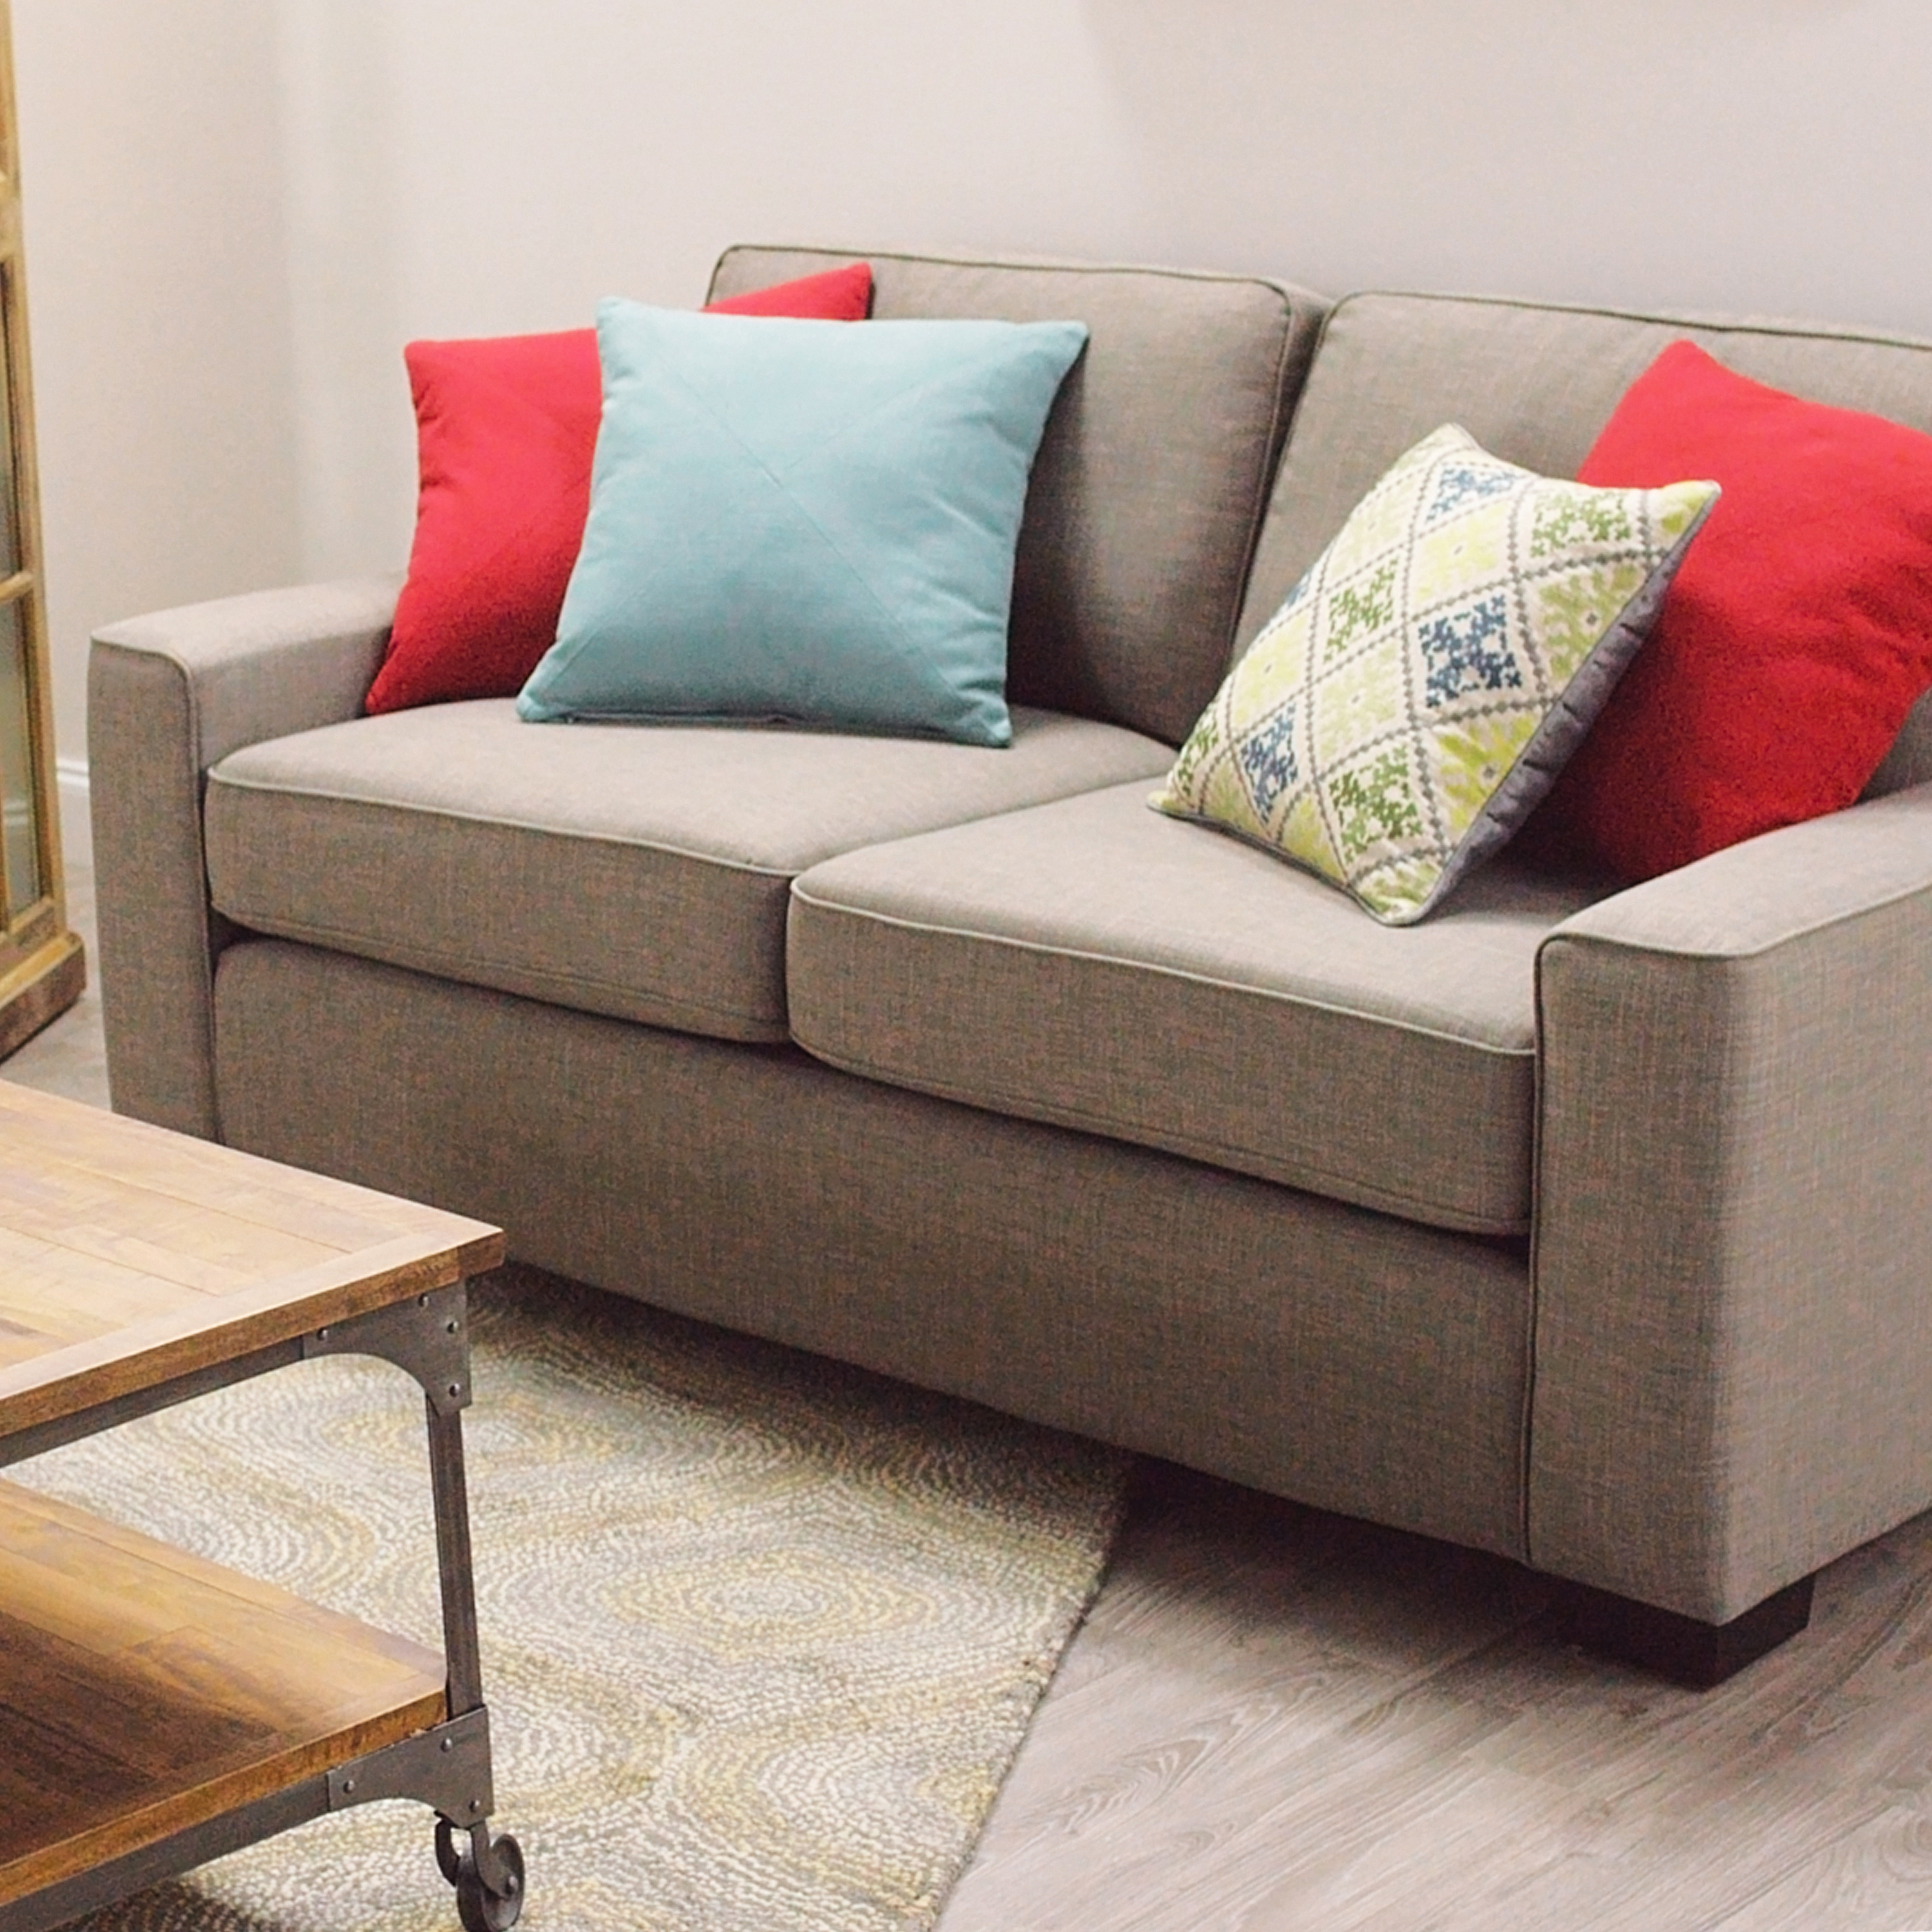 square sofa beds bed chairs uk pewter gray aylin arm world market